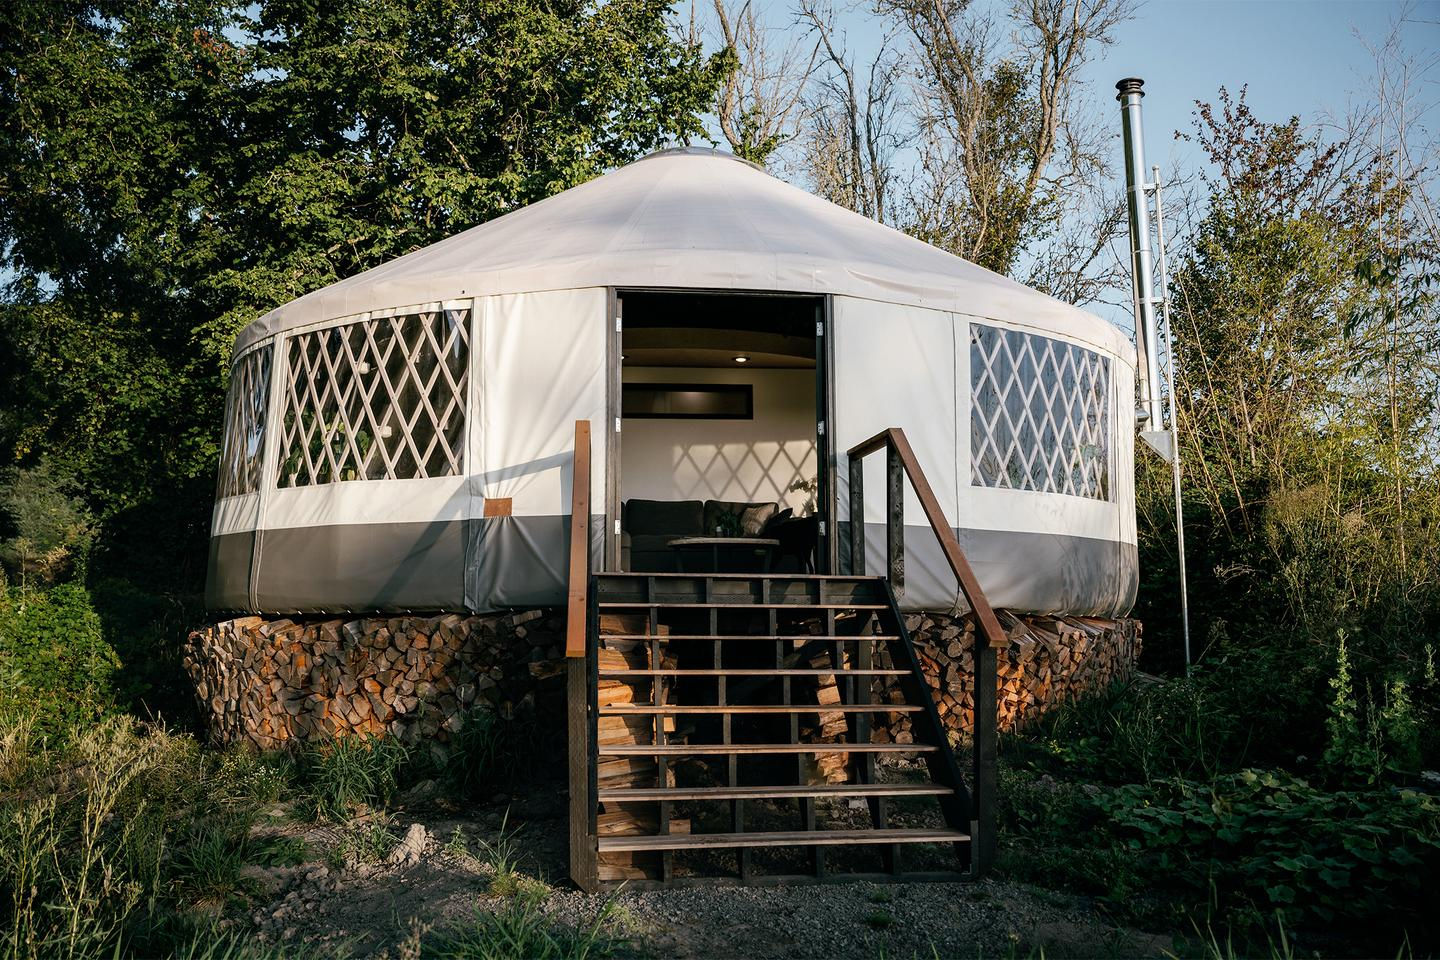 Utilizing a traditional yurt structure, the home measures just over 30 ft (9.14 m) in diameter